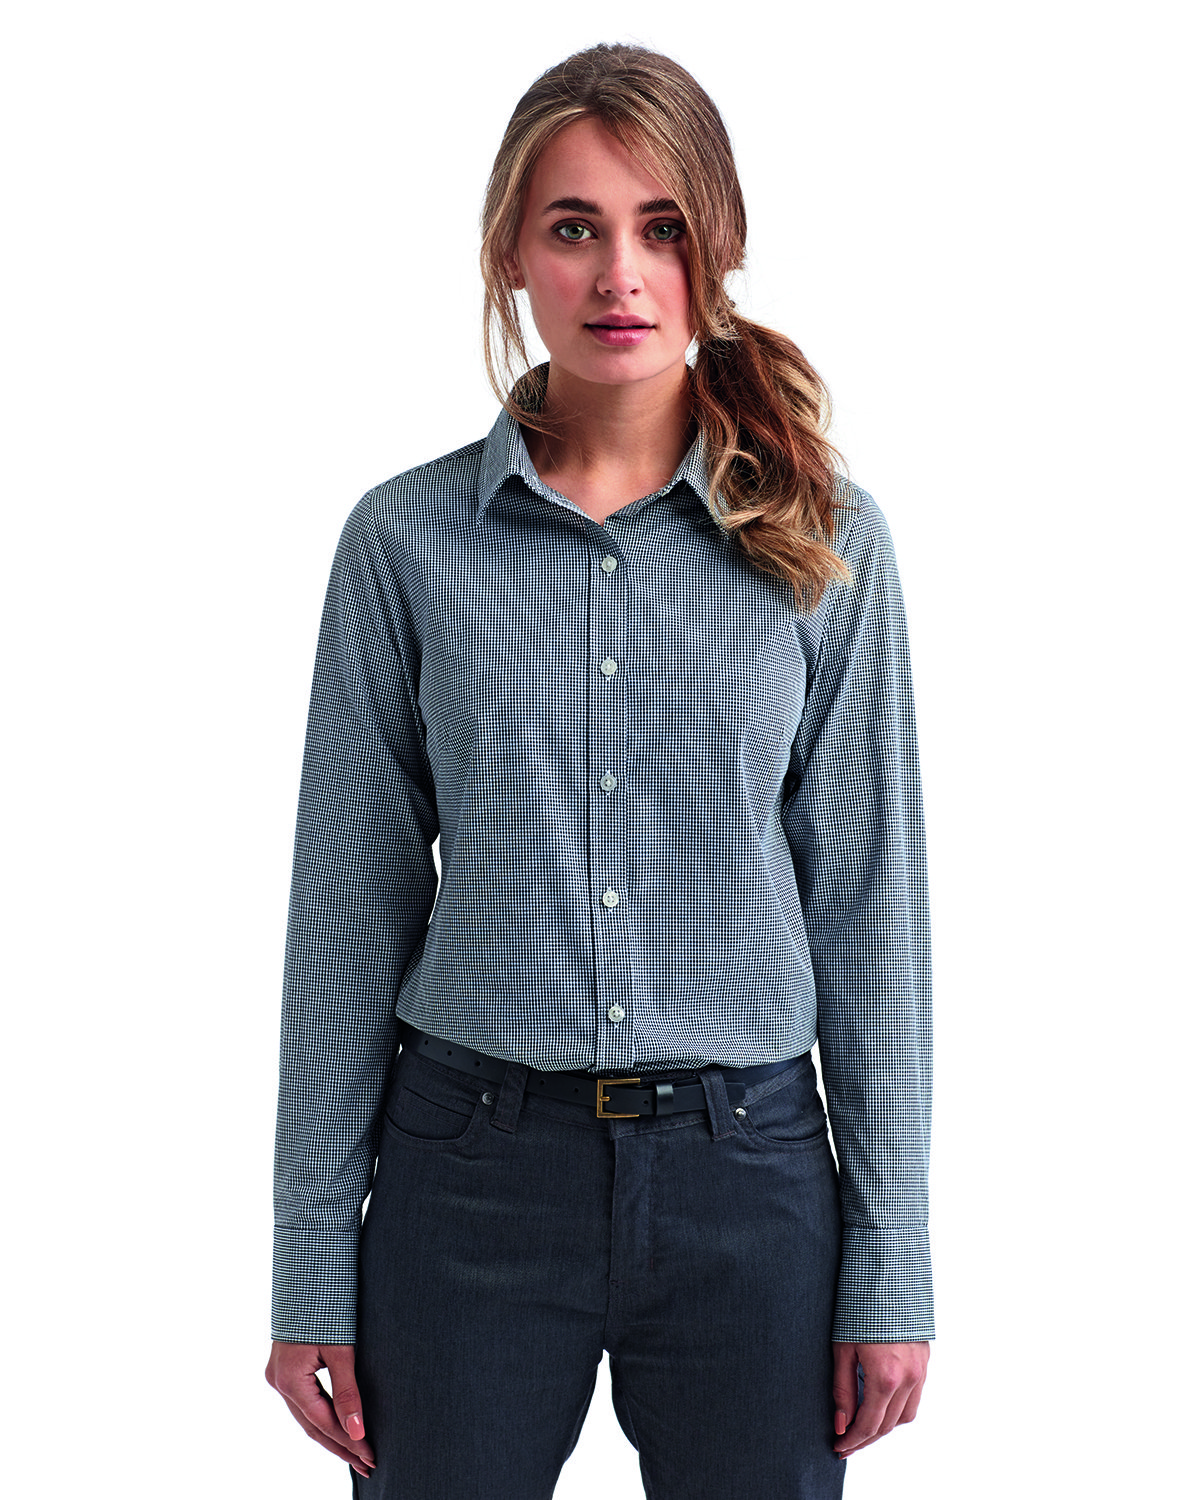 Artisan Collection by Reprime Ladies' Microcheck Gingham Long-Sleeve Cotton Shirt BLACK/ WHITE